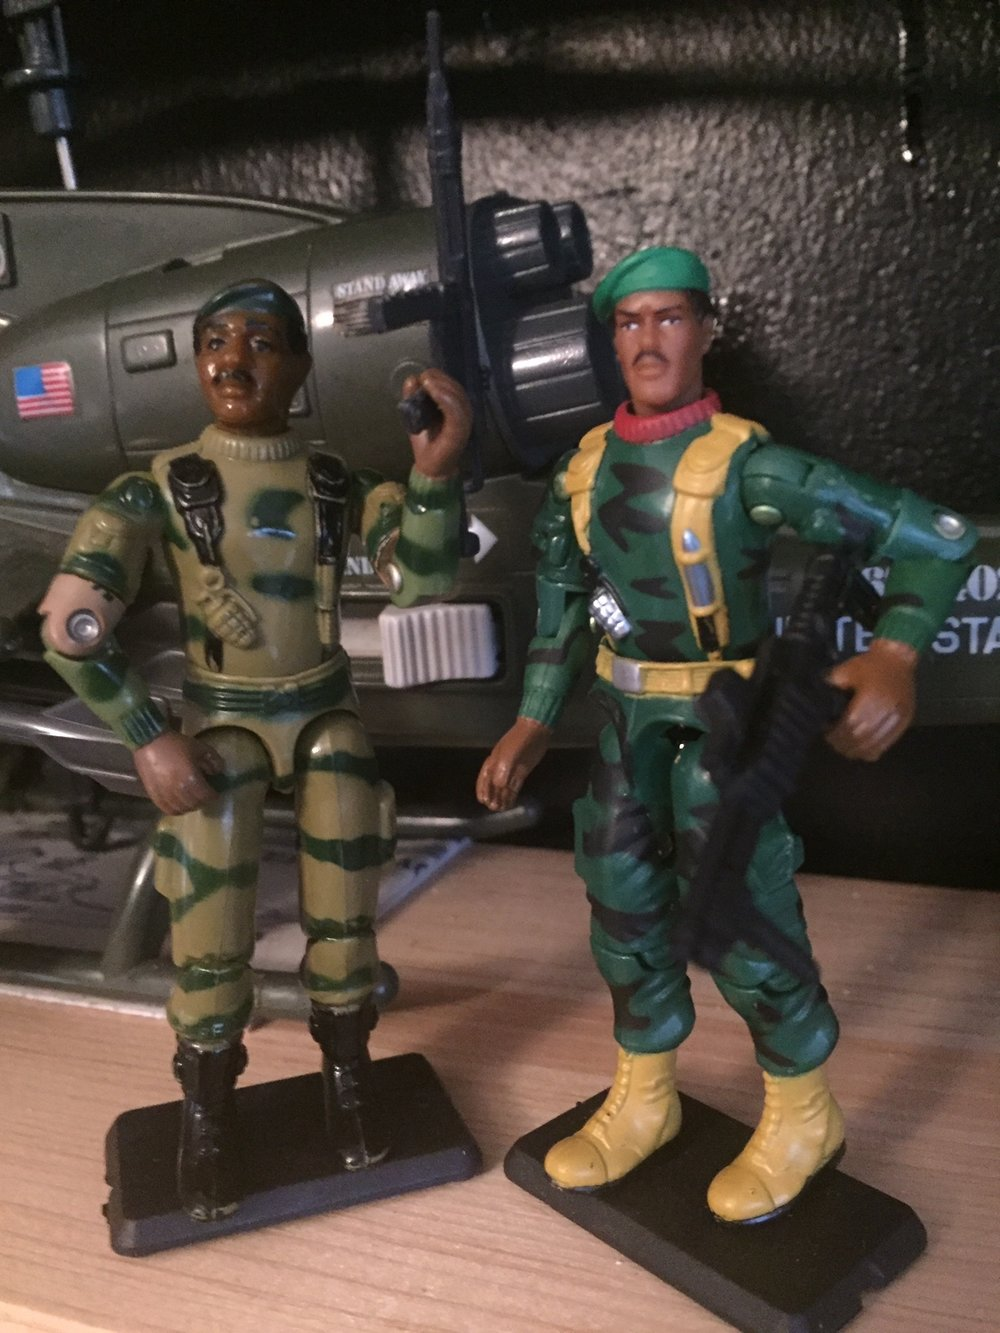 G.I. Joe Stalker (1983) and an updated version from 2005 from the when it was cool collection